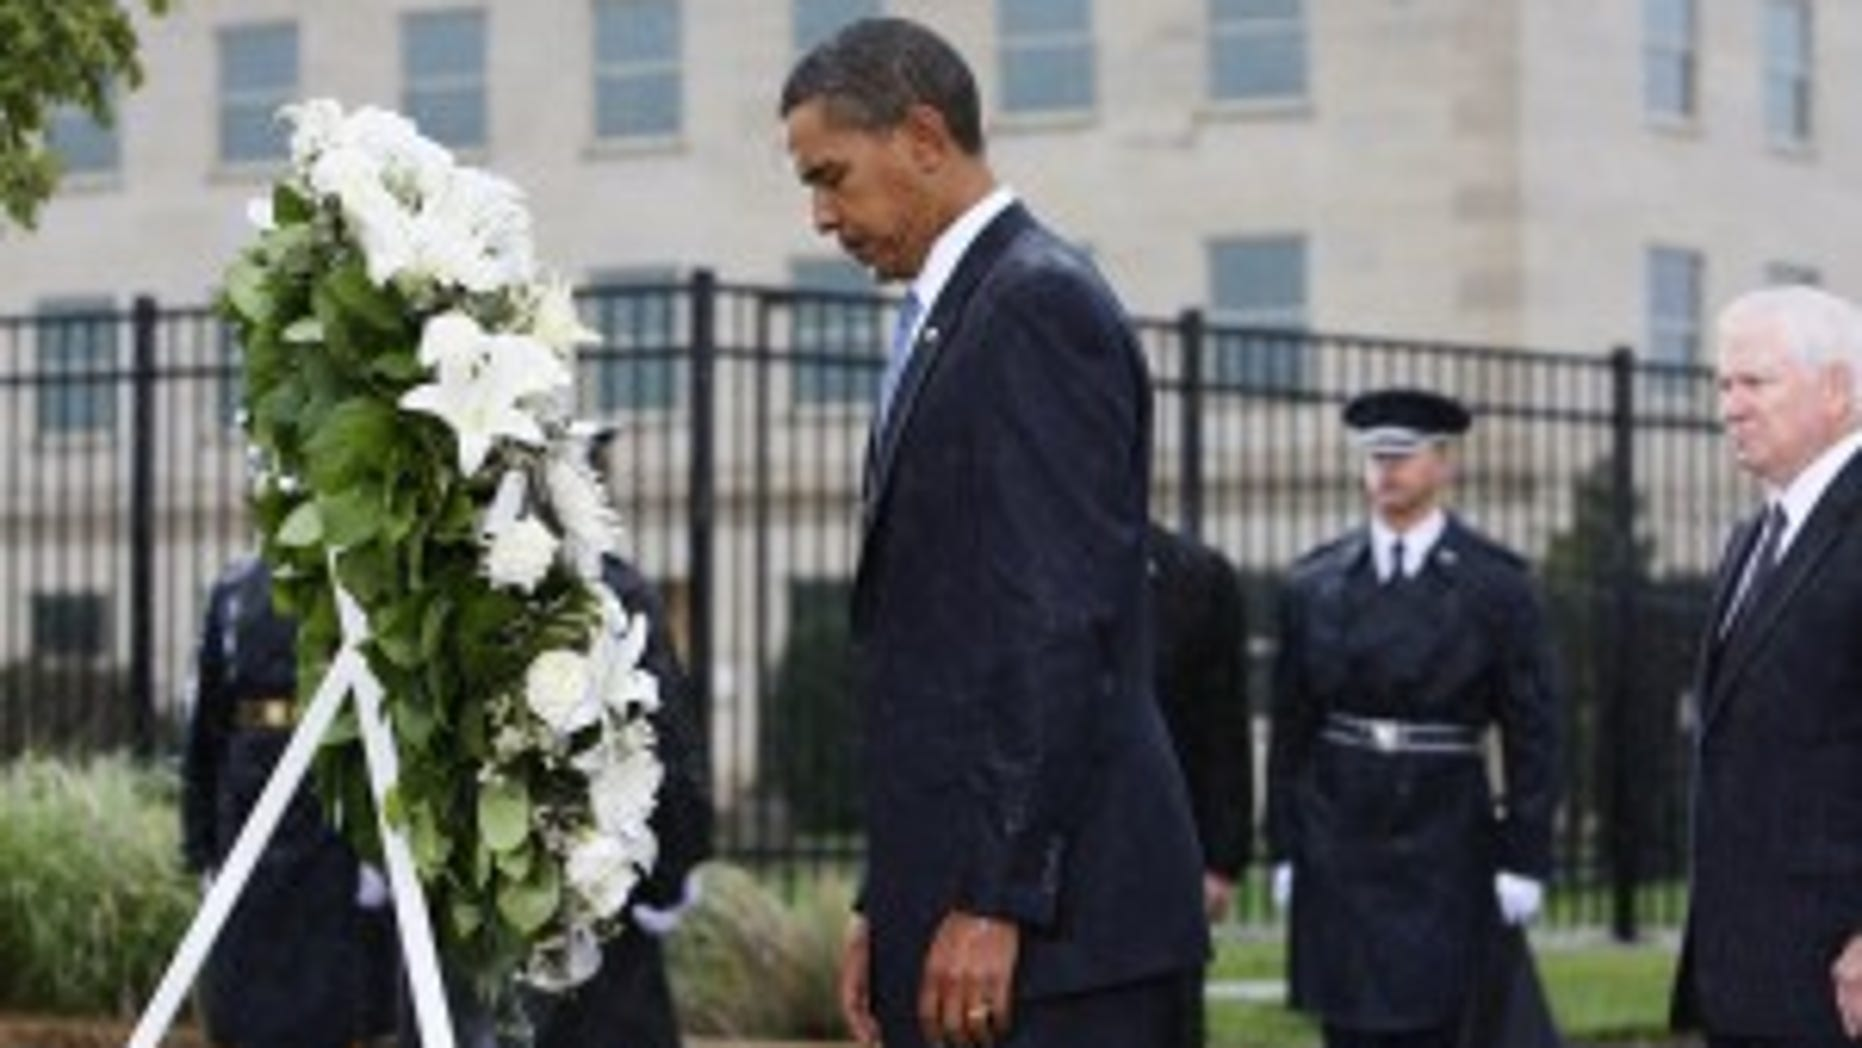 Standing in a steady rain, President Barack Obama bows his head as he lays a wreath at the Pentagon Memorial, marking the eighth anniversary of the Sept. 11 attacks, Friday, Sept. 11, 2009, at the Pentagon. Defense Secretary Robert Gates is at right. (AP Photo/Charles Dharapak)